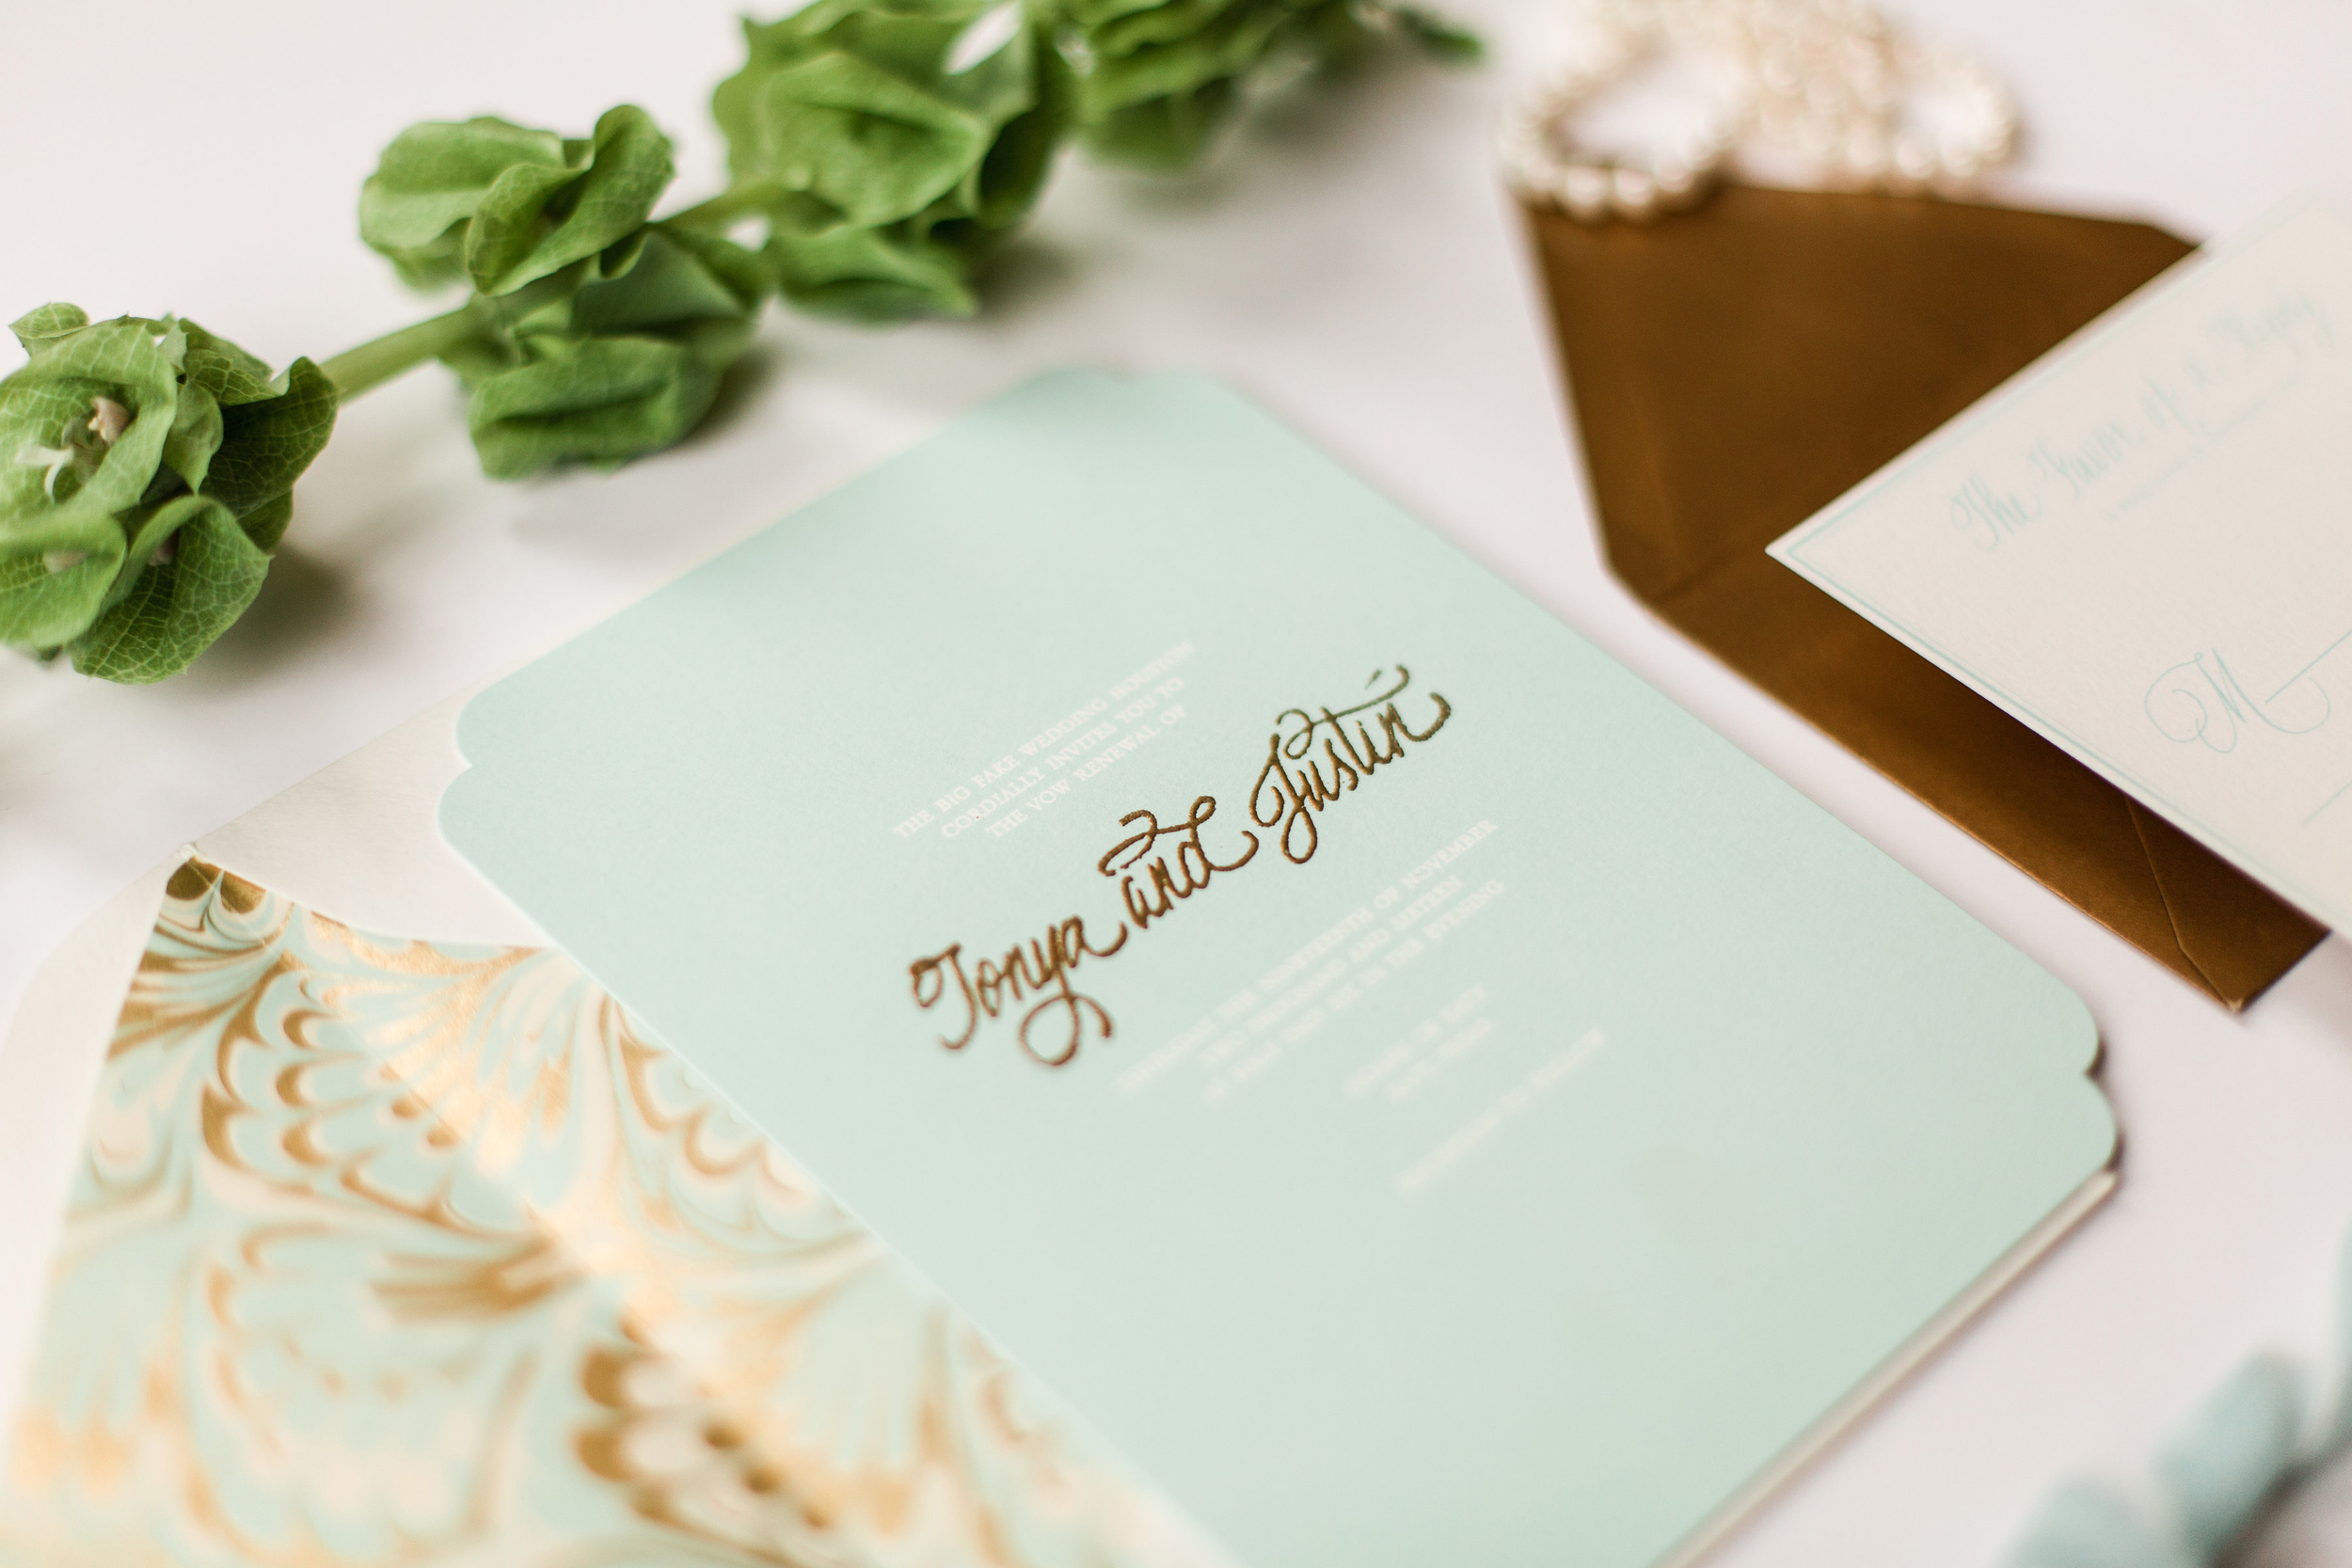 gold raised ink thermography wedding invitation with die cut edges on pale blue paper.jpg